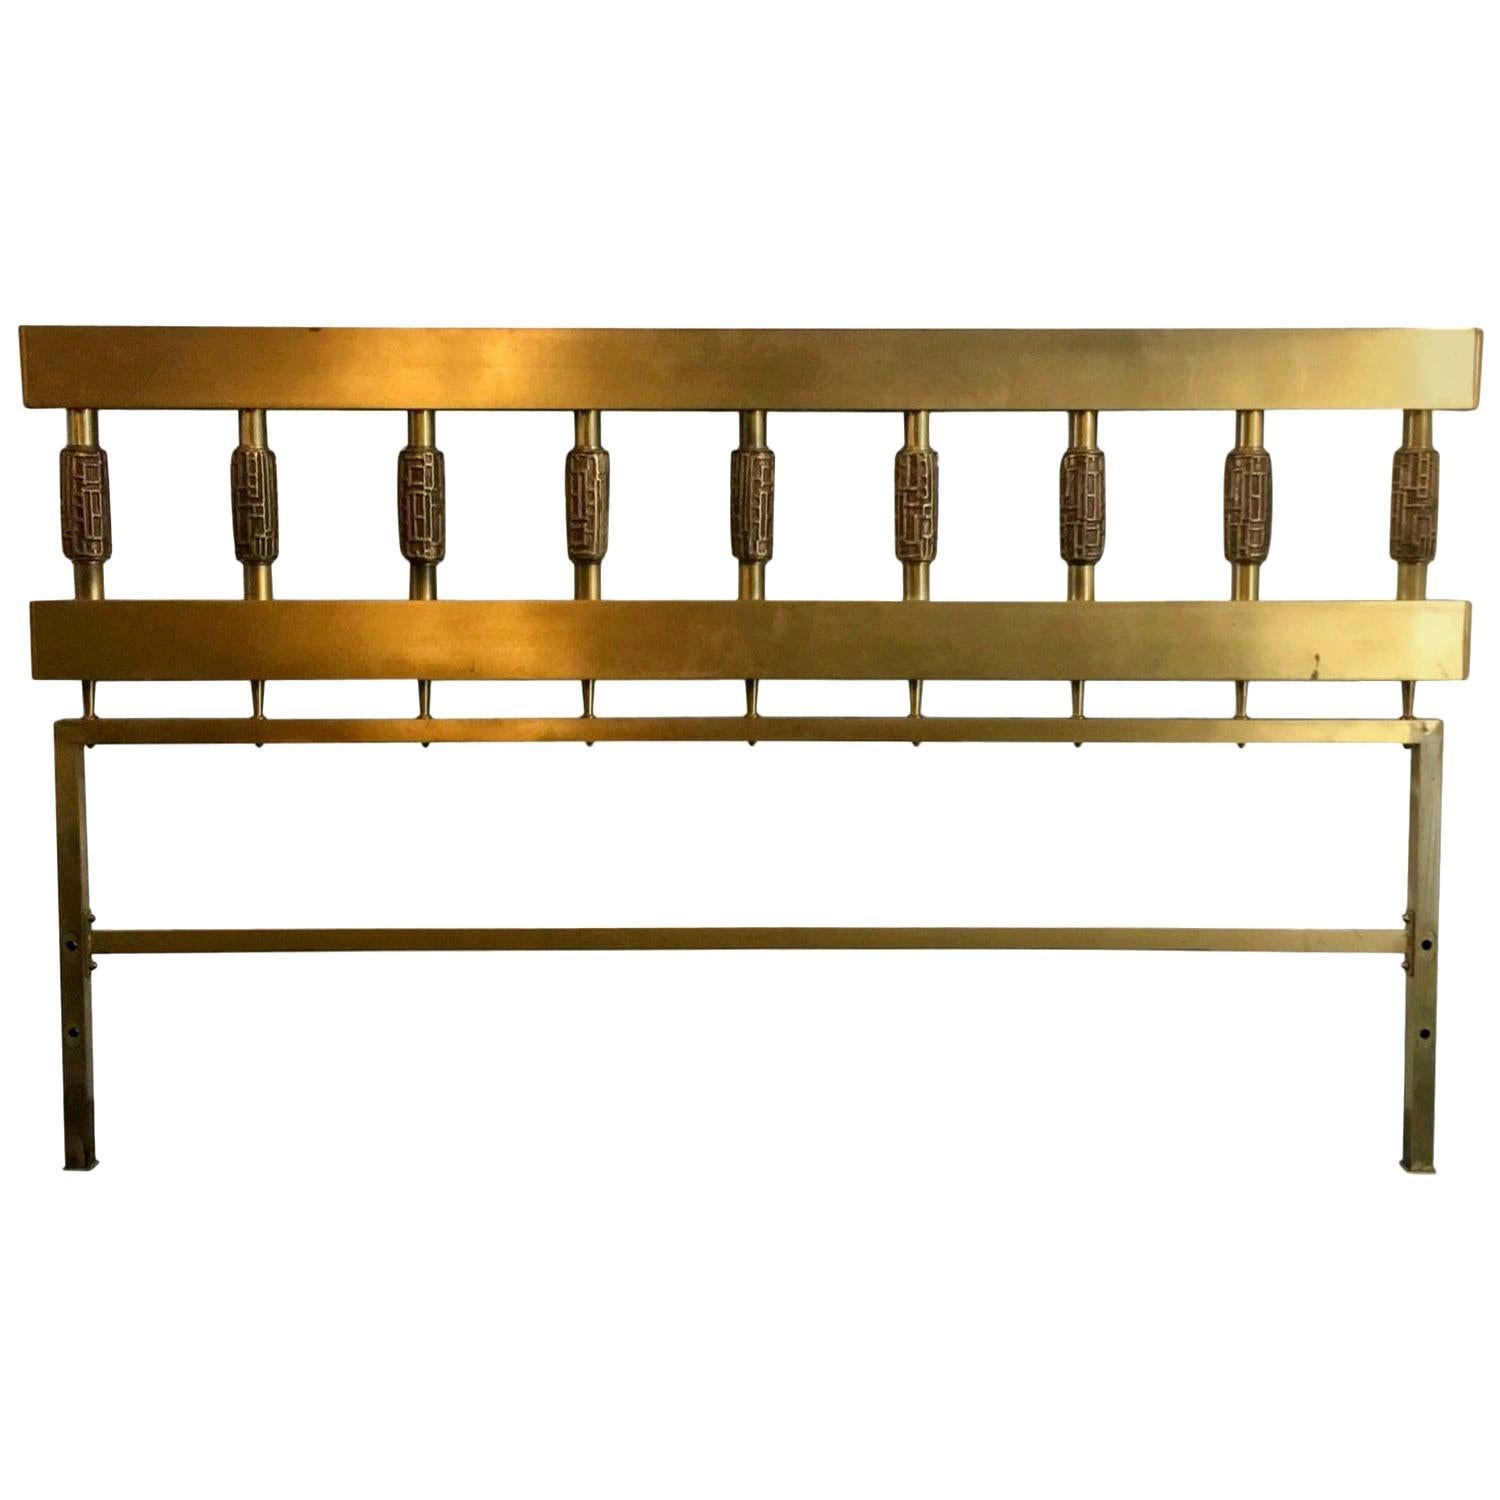 Mid-Century Modern Brass and Bronze Headboard by Luciano Frigerio, Italy, 1970s